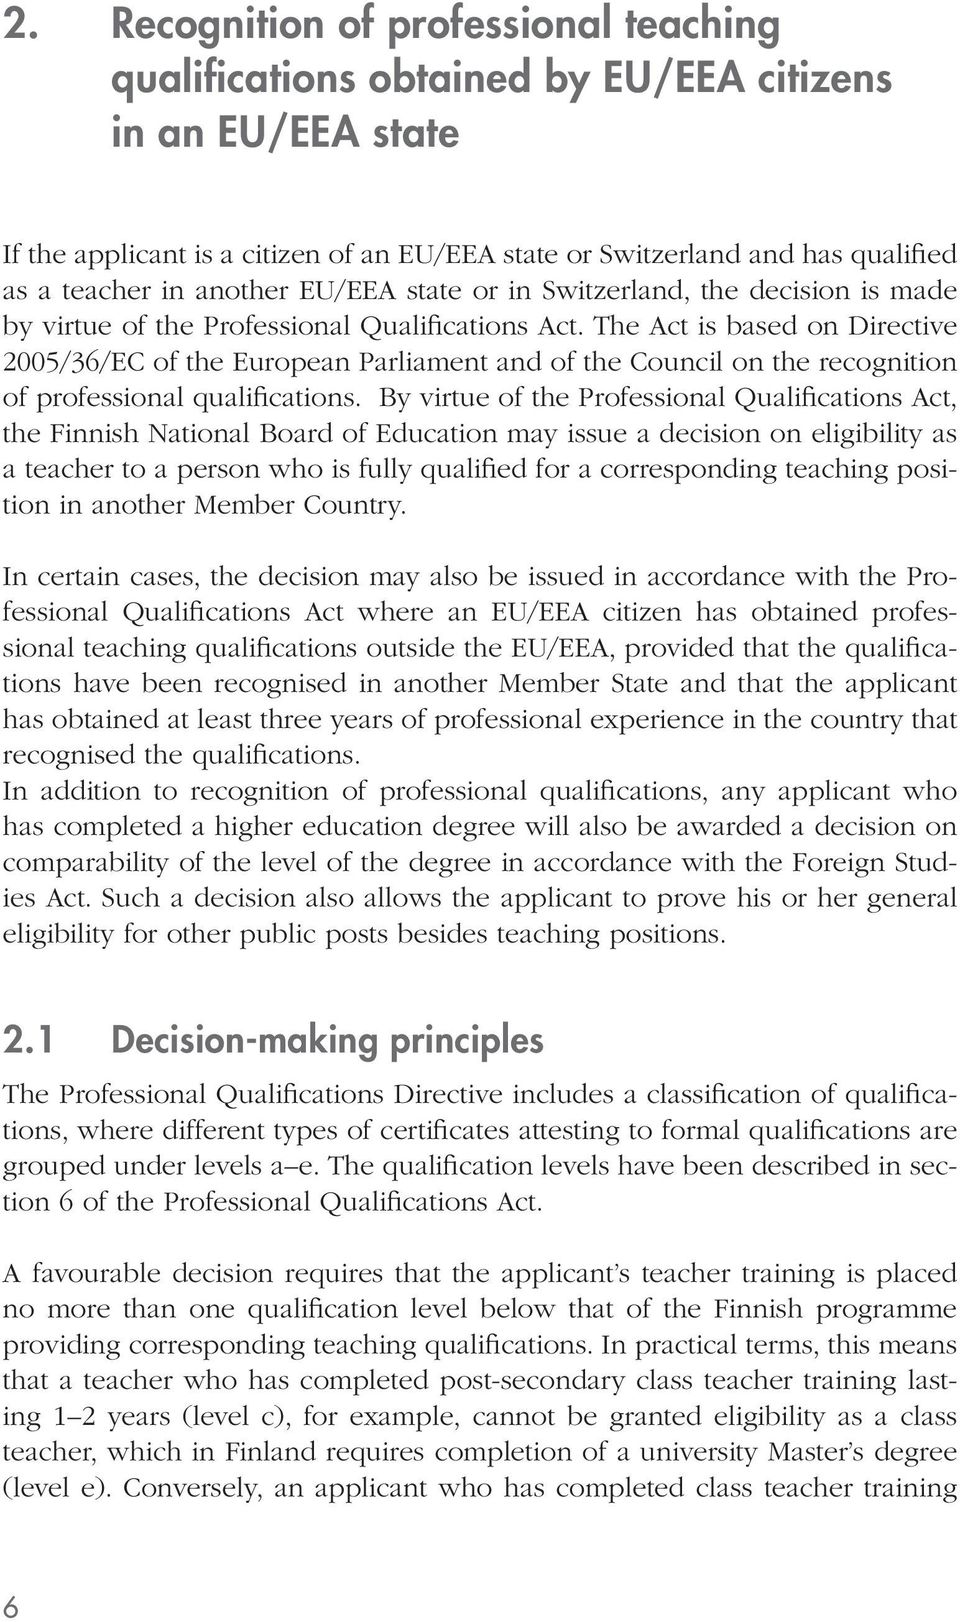 The Act is based on Directive 2005/36/EC of the European Parliament and of the Council on the recognition of professional qualifications.